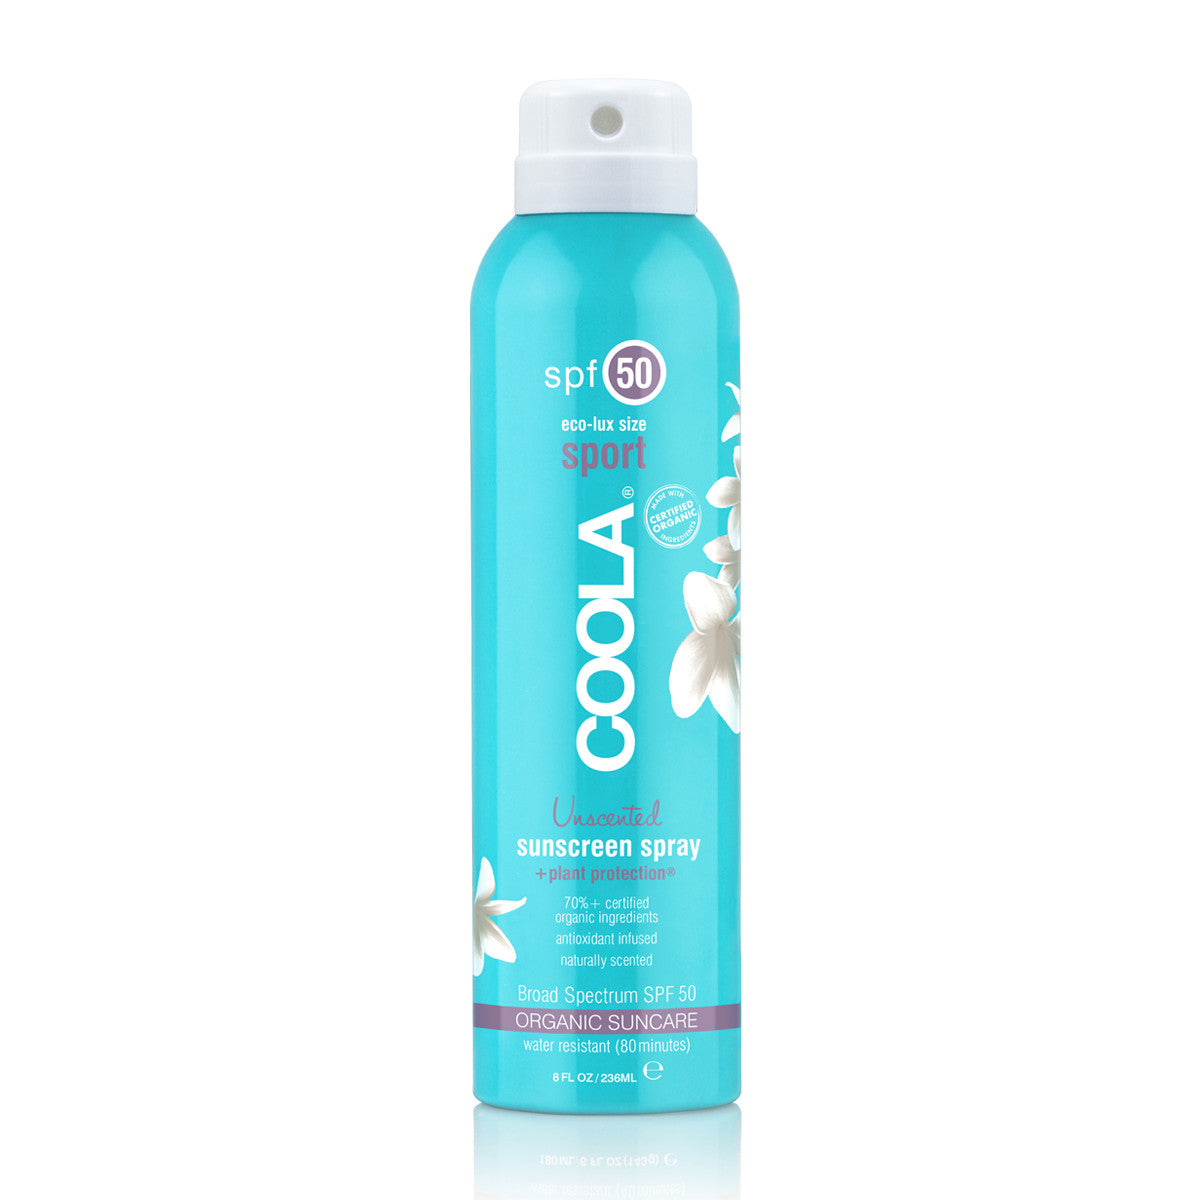 COOLA Sport SPF50 Unscented Sunscreen Spray